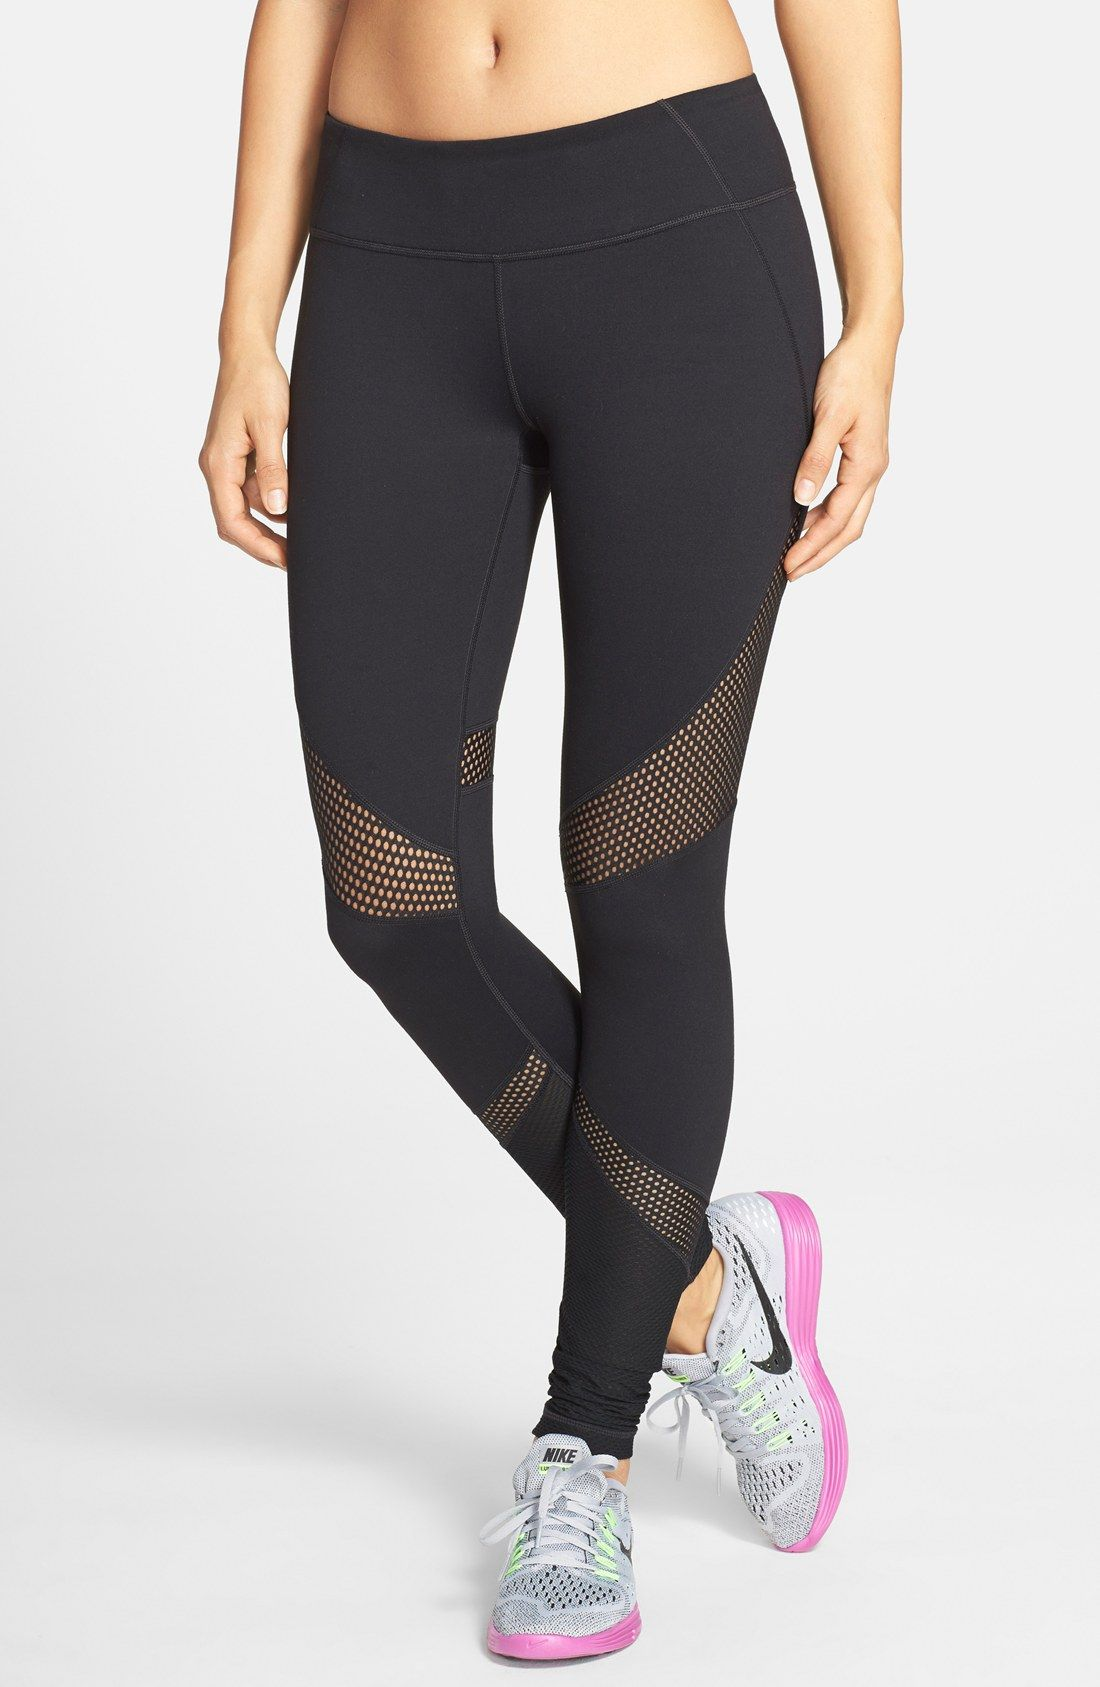 Zella 'Live In Out of Bounds' Slim Fit Leggings